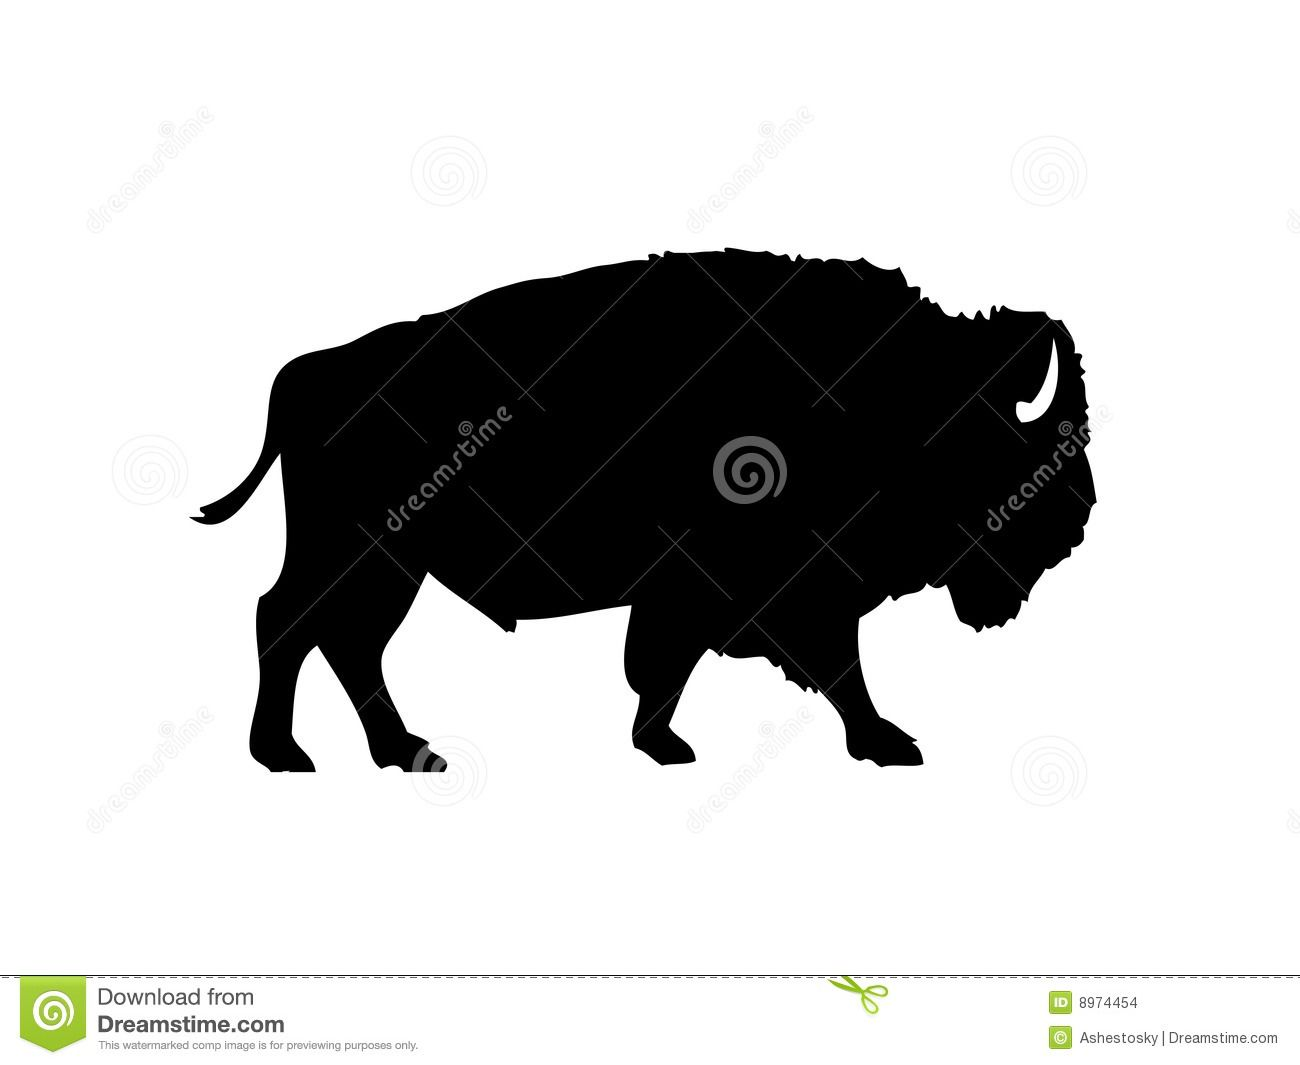 Bison clipart female buffalo. American vector silhouette download